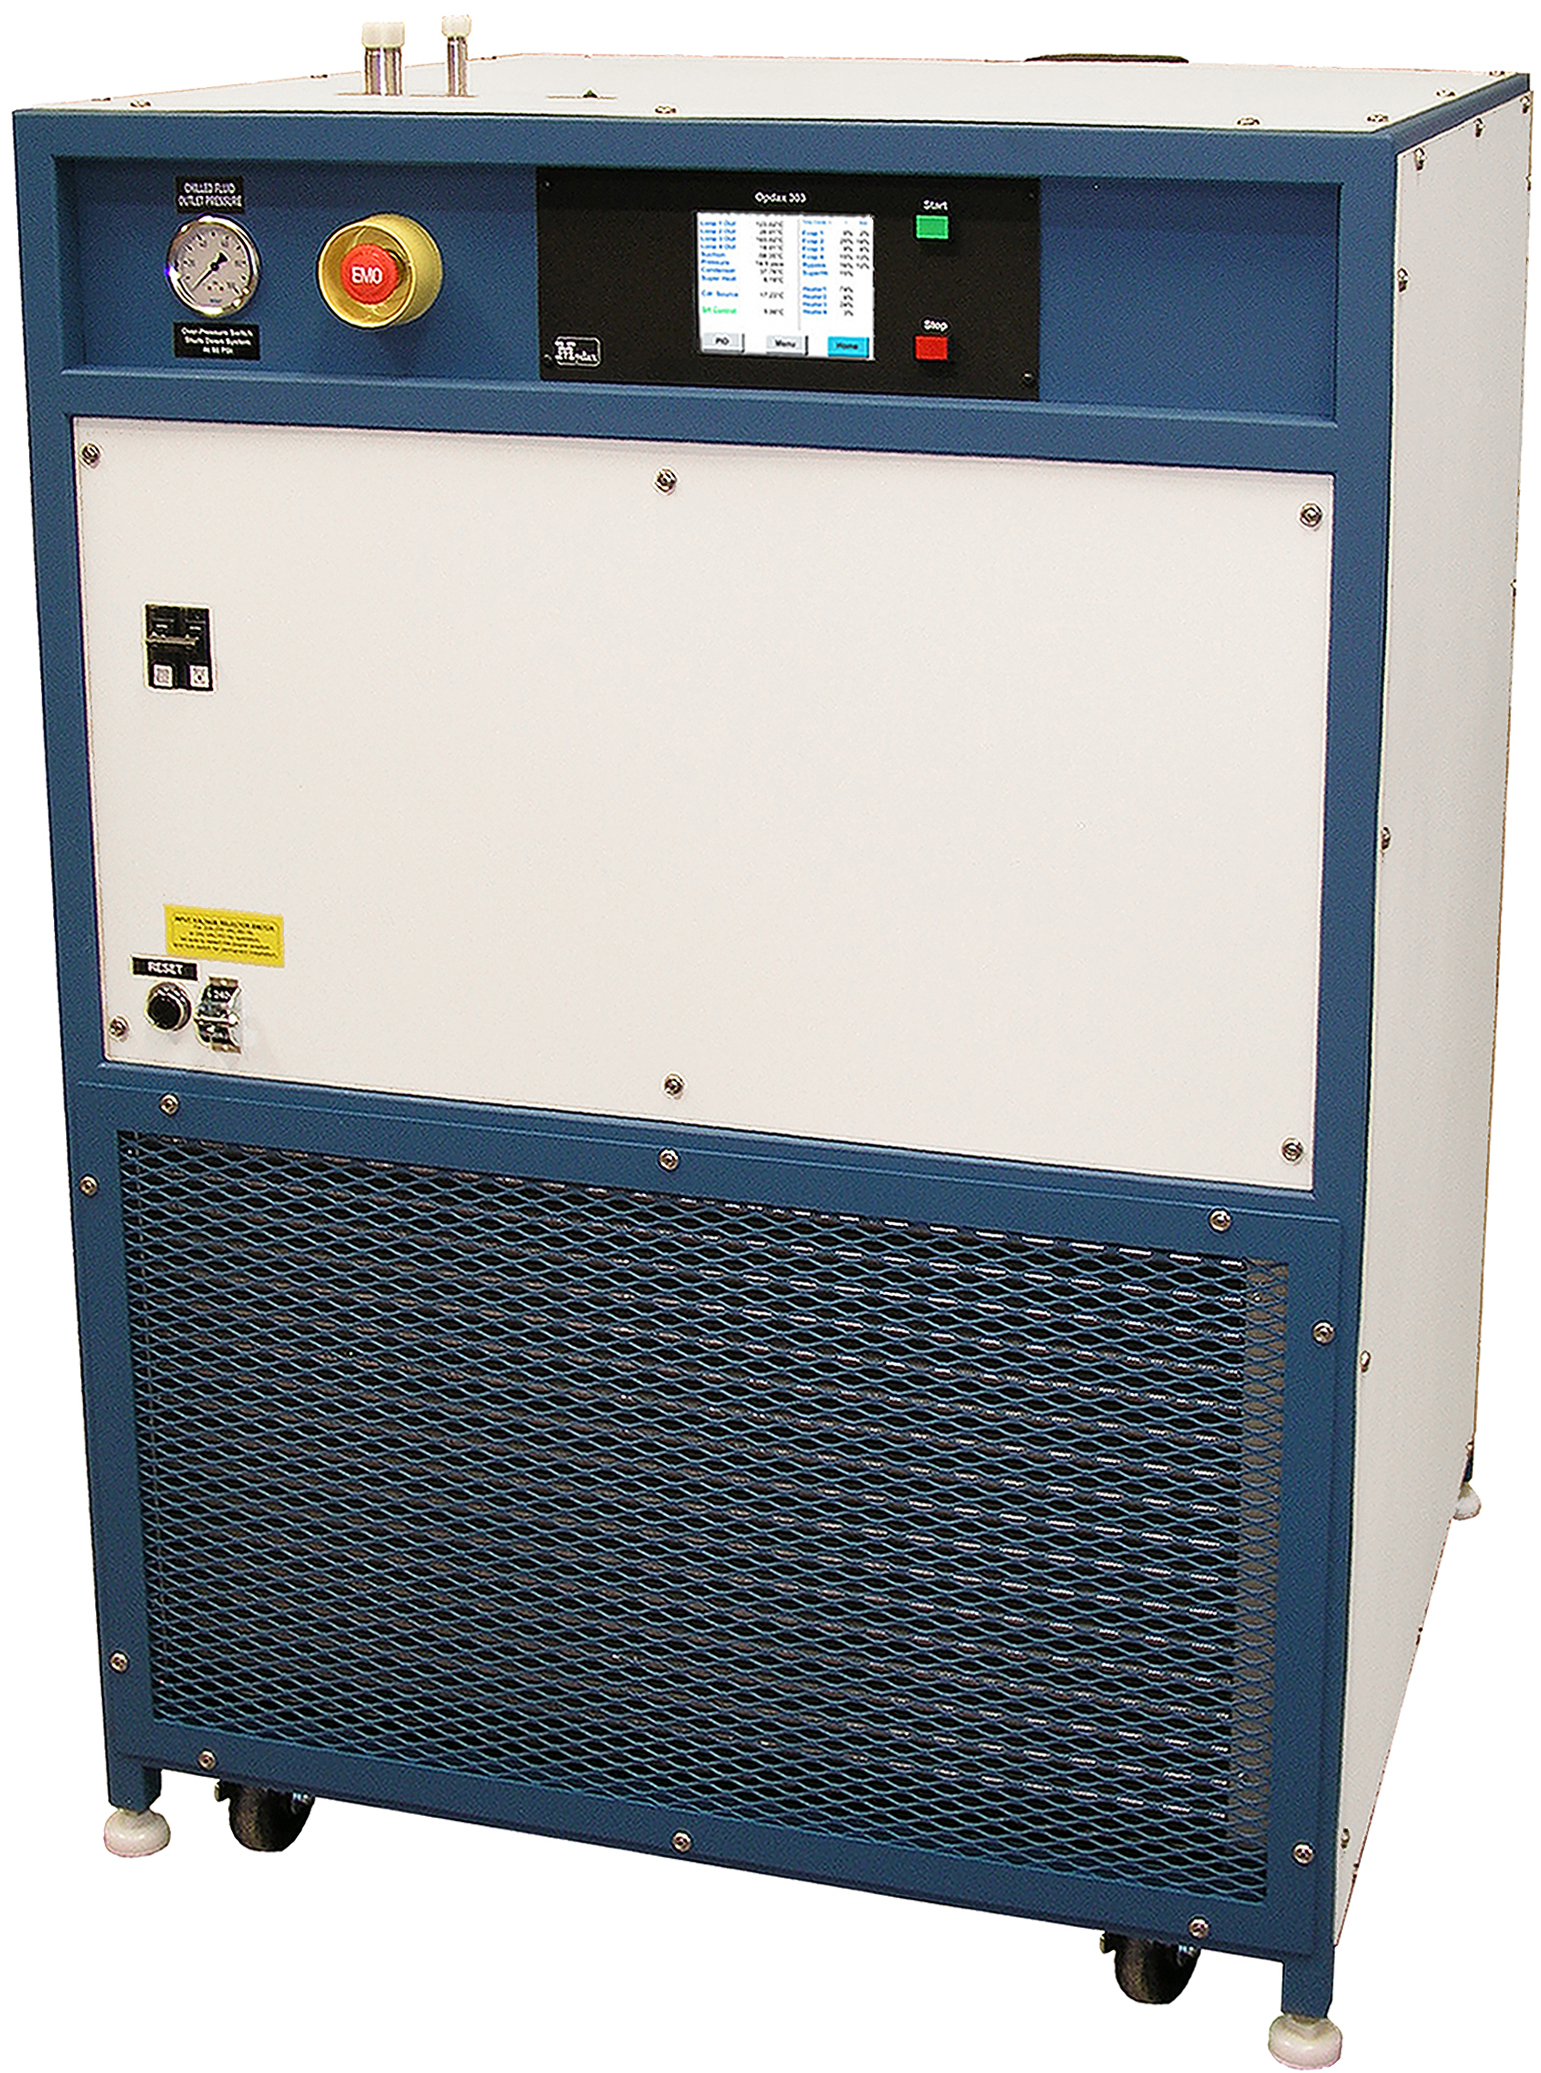 Mydax 1M12A Air Cooled Process Cooling Chiller